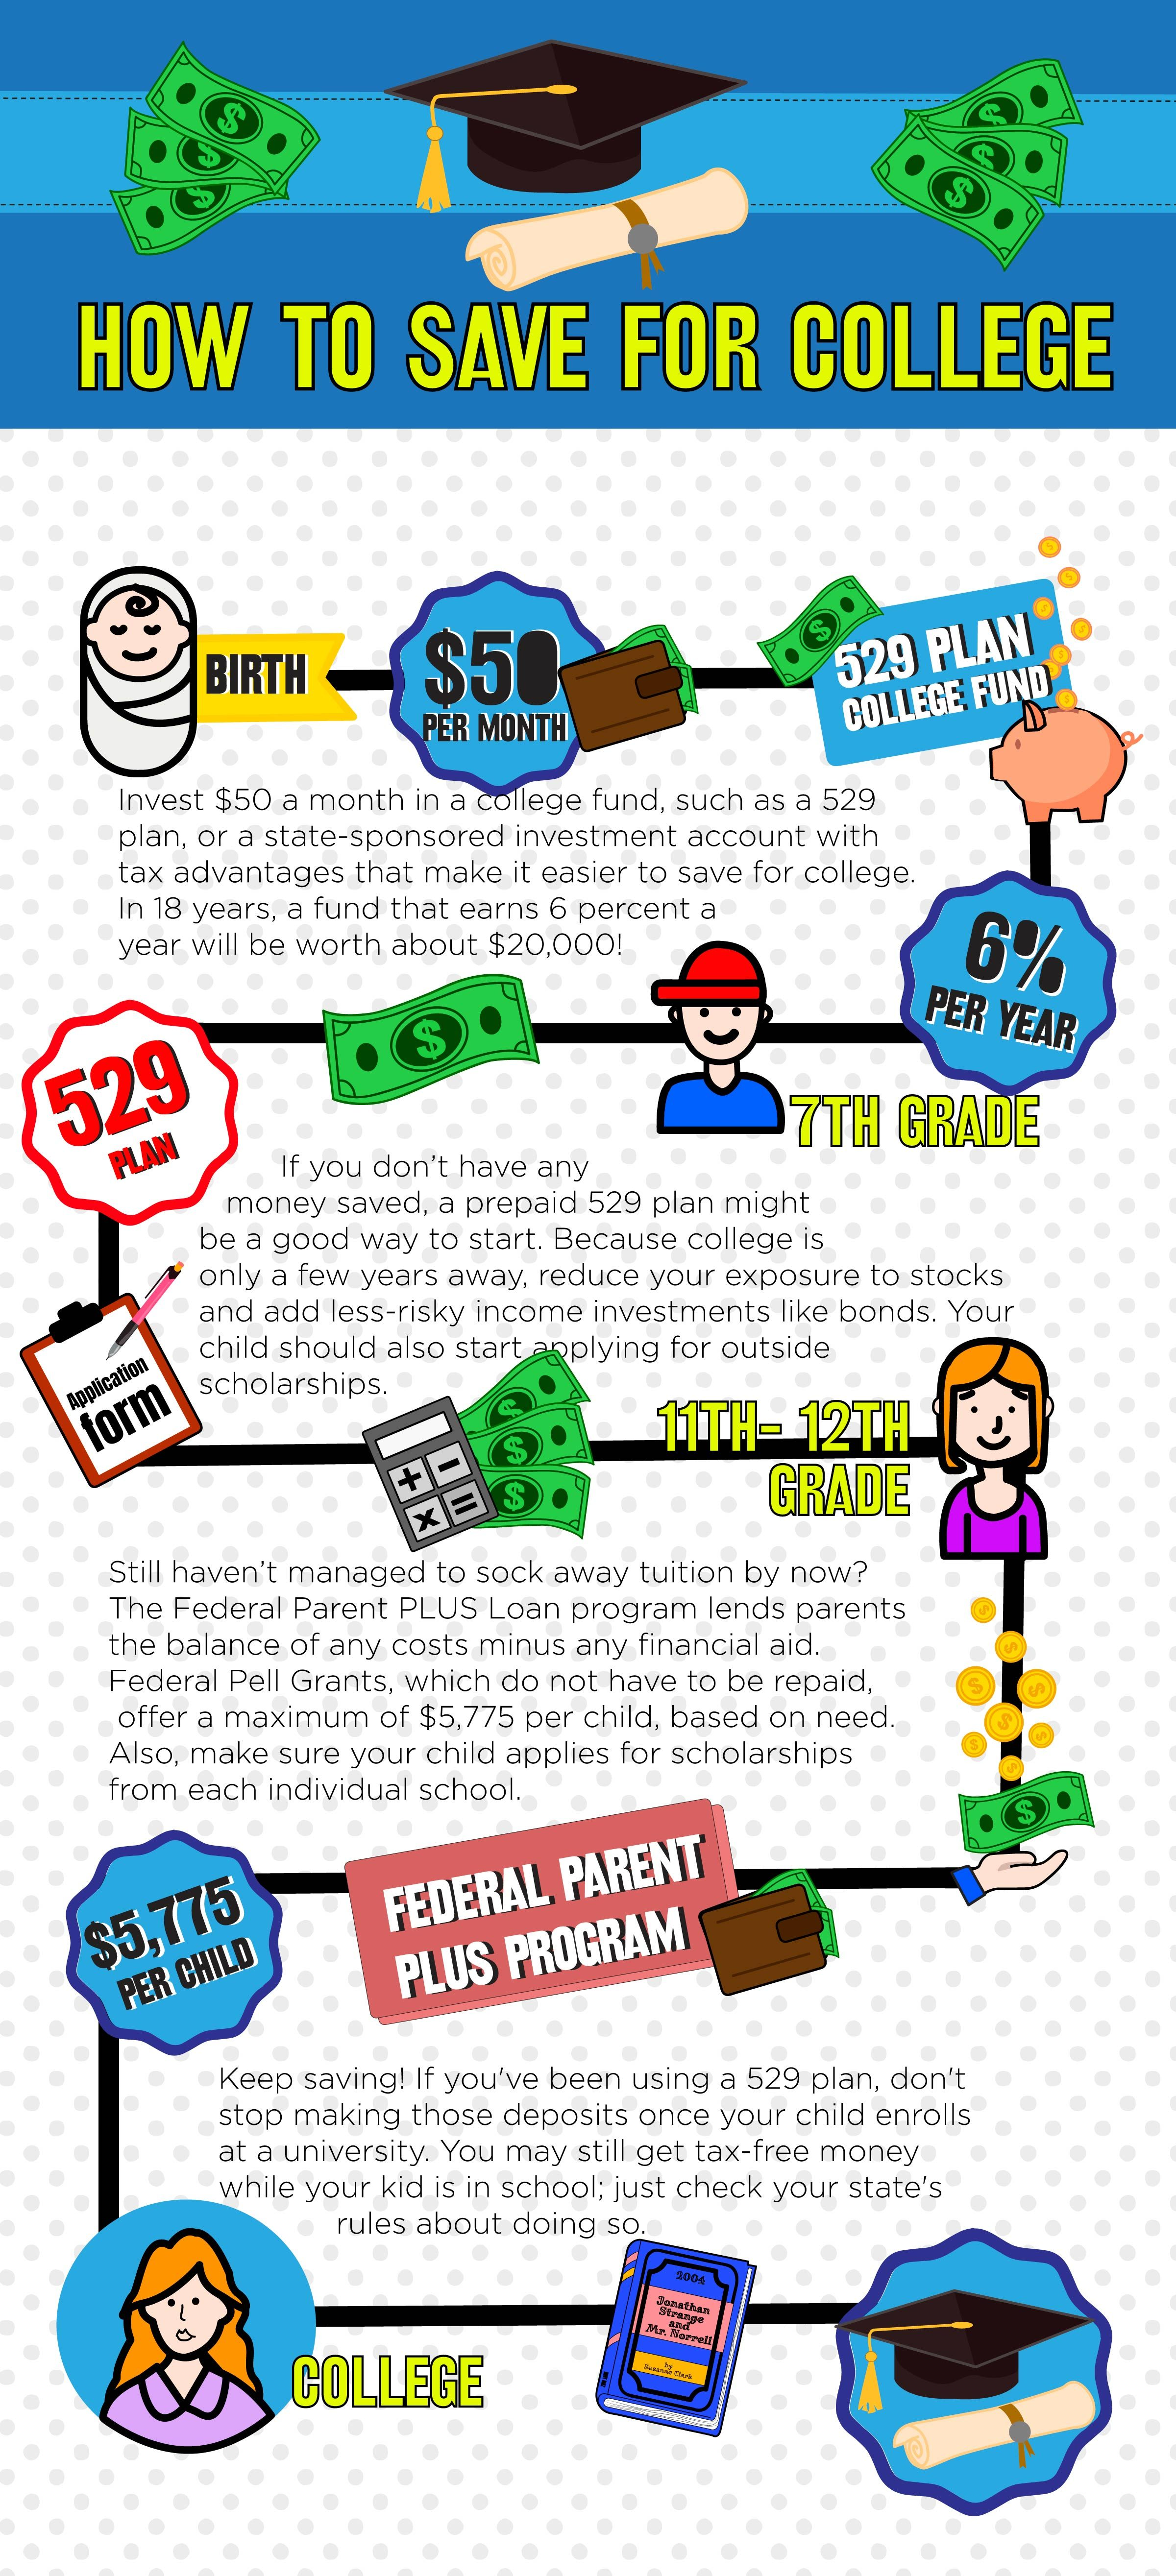 Parents,-This-Timeline-Breaks-Down-Exactly-How-to-Save-for-College